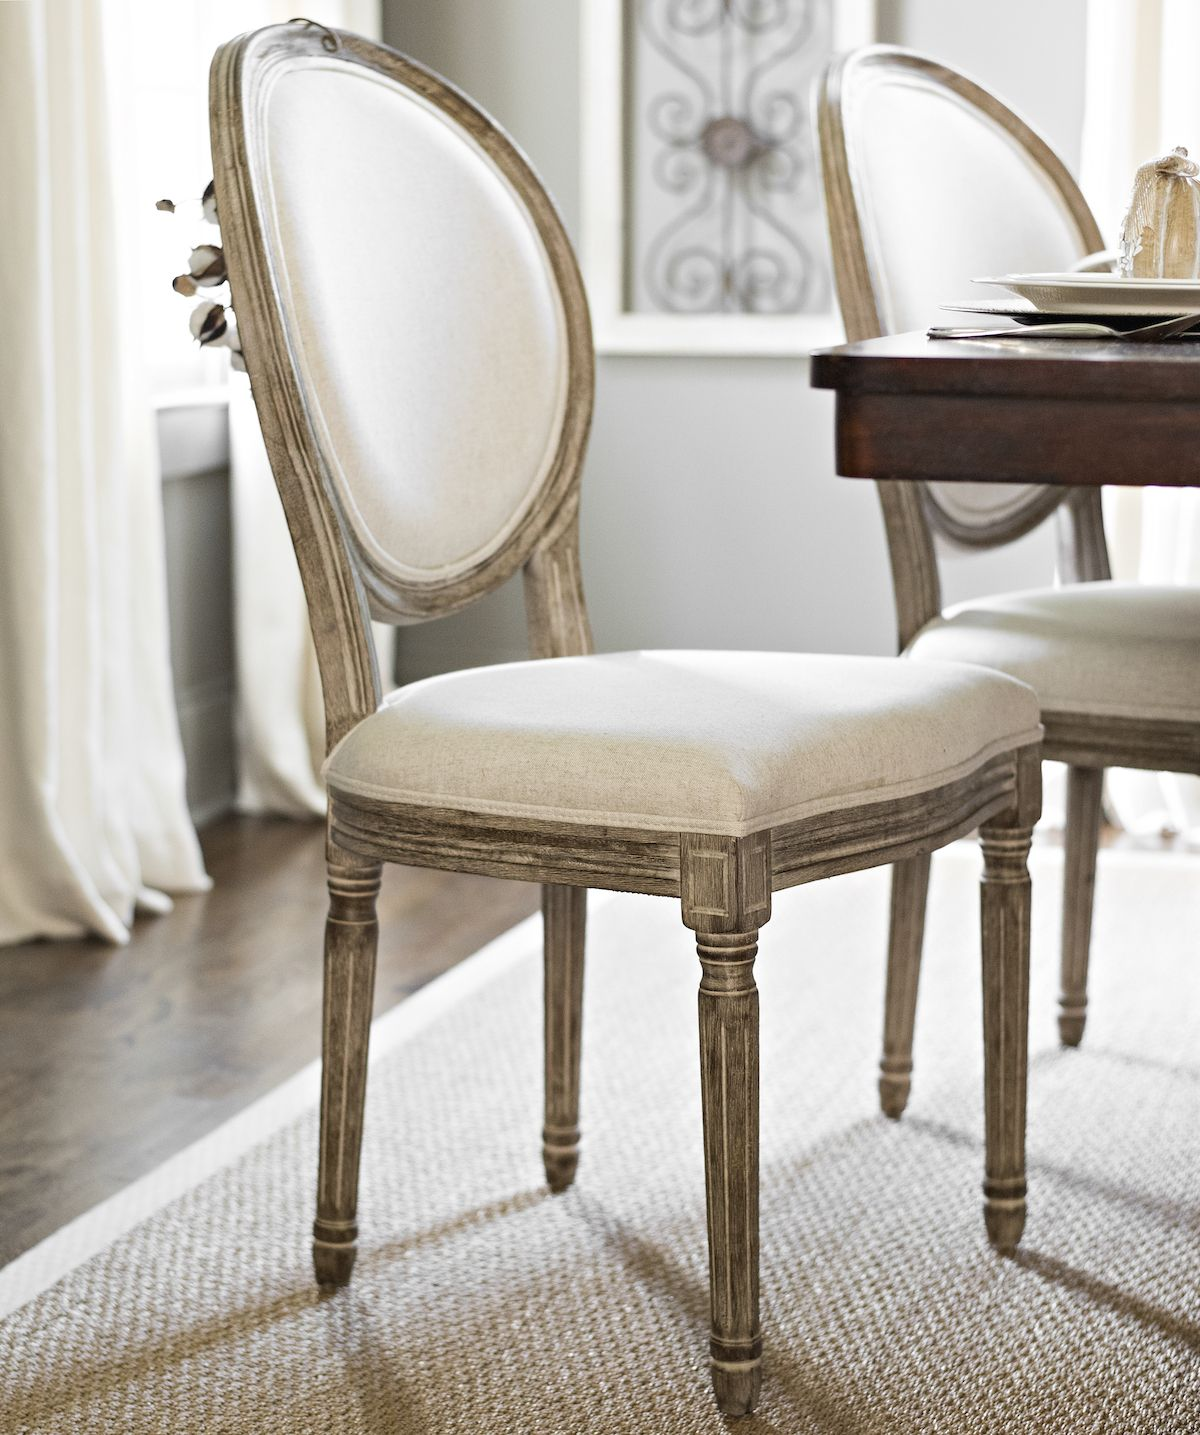 Get A Lot Of Vintage Style With This Regal Dining Chair Leather Dining Room Chairs Dining Chairs Leather Dining Chairs